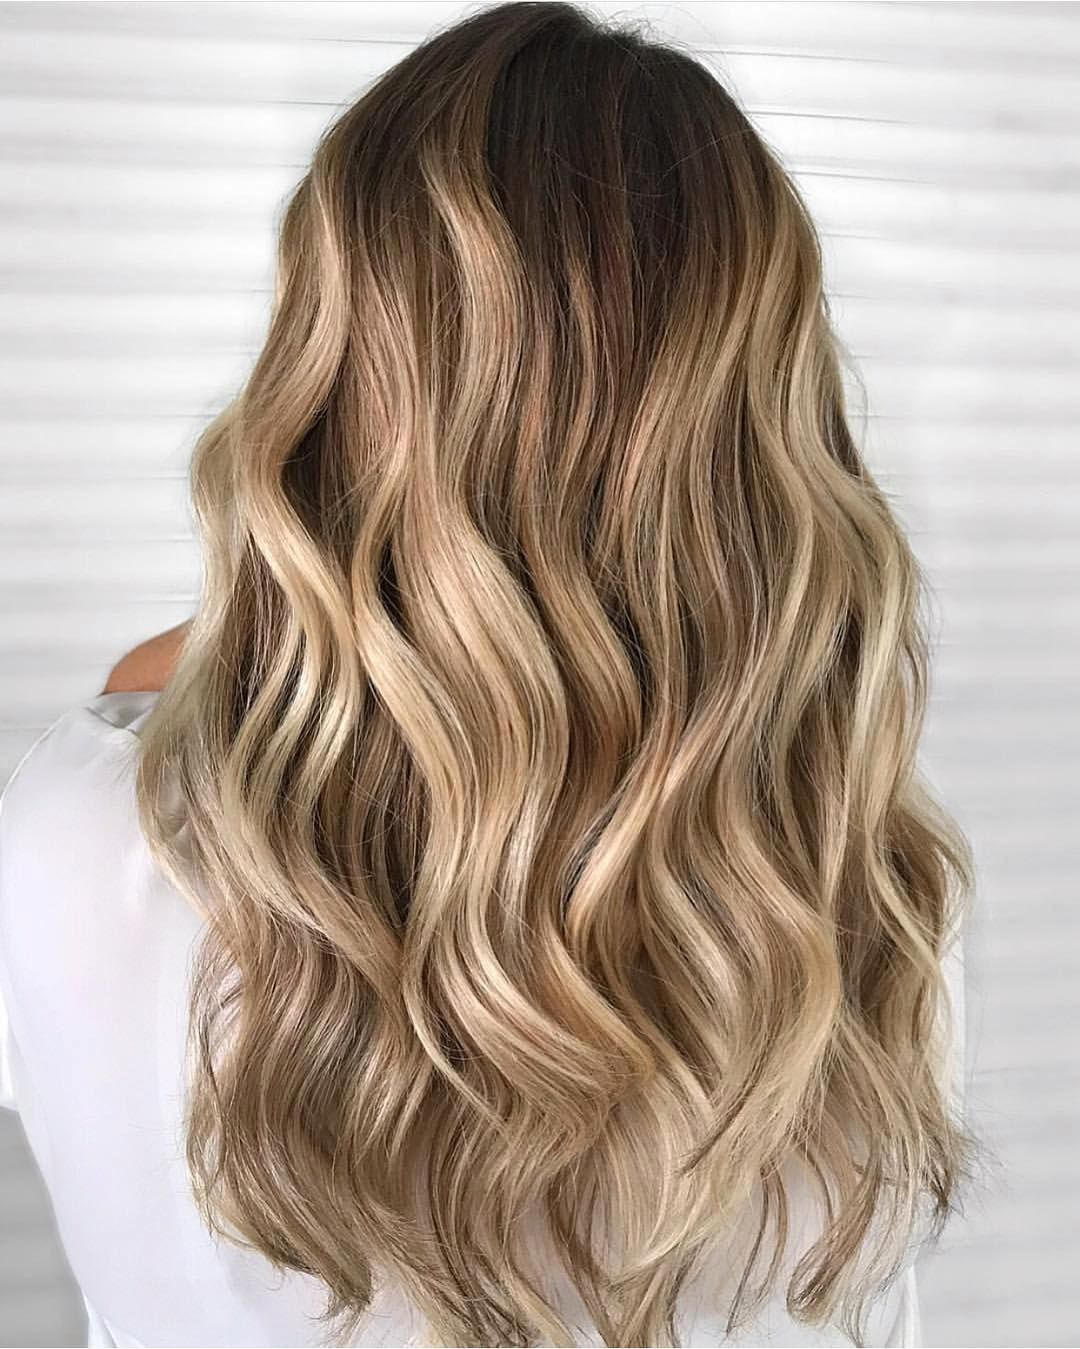 """Kelly Massias On Instagram: """"Creamy Blonde. . . . Saturday In December Reminder For All My Hair People- Drink Water And Eat Lunch!! Xo . . Kellymassiashair Lift.Hair…"""" - Hair Beauty"""